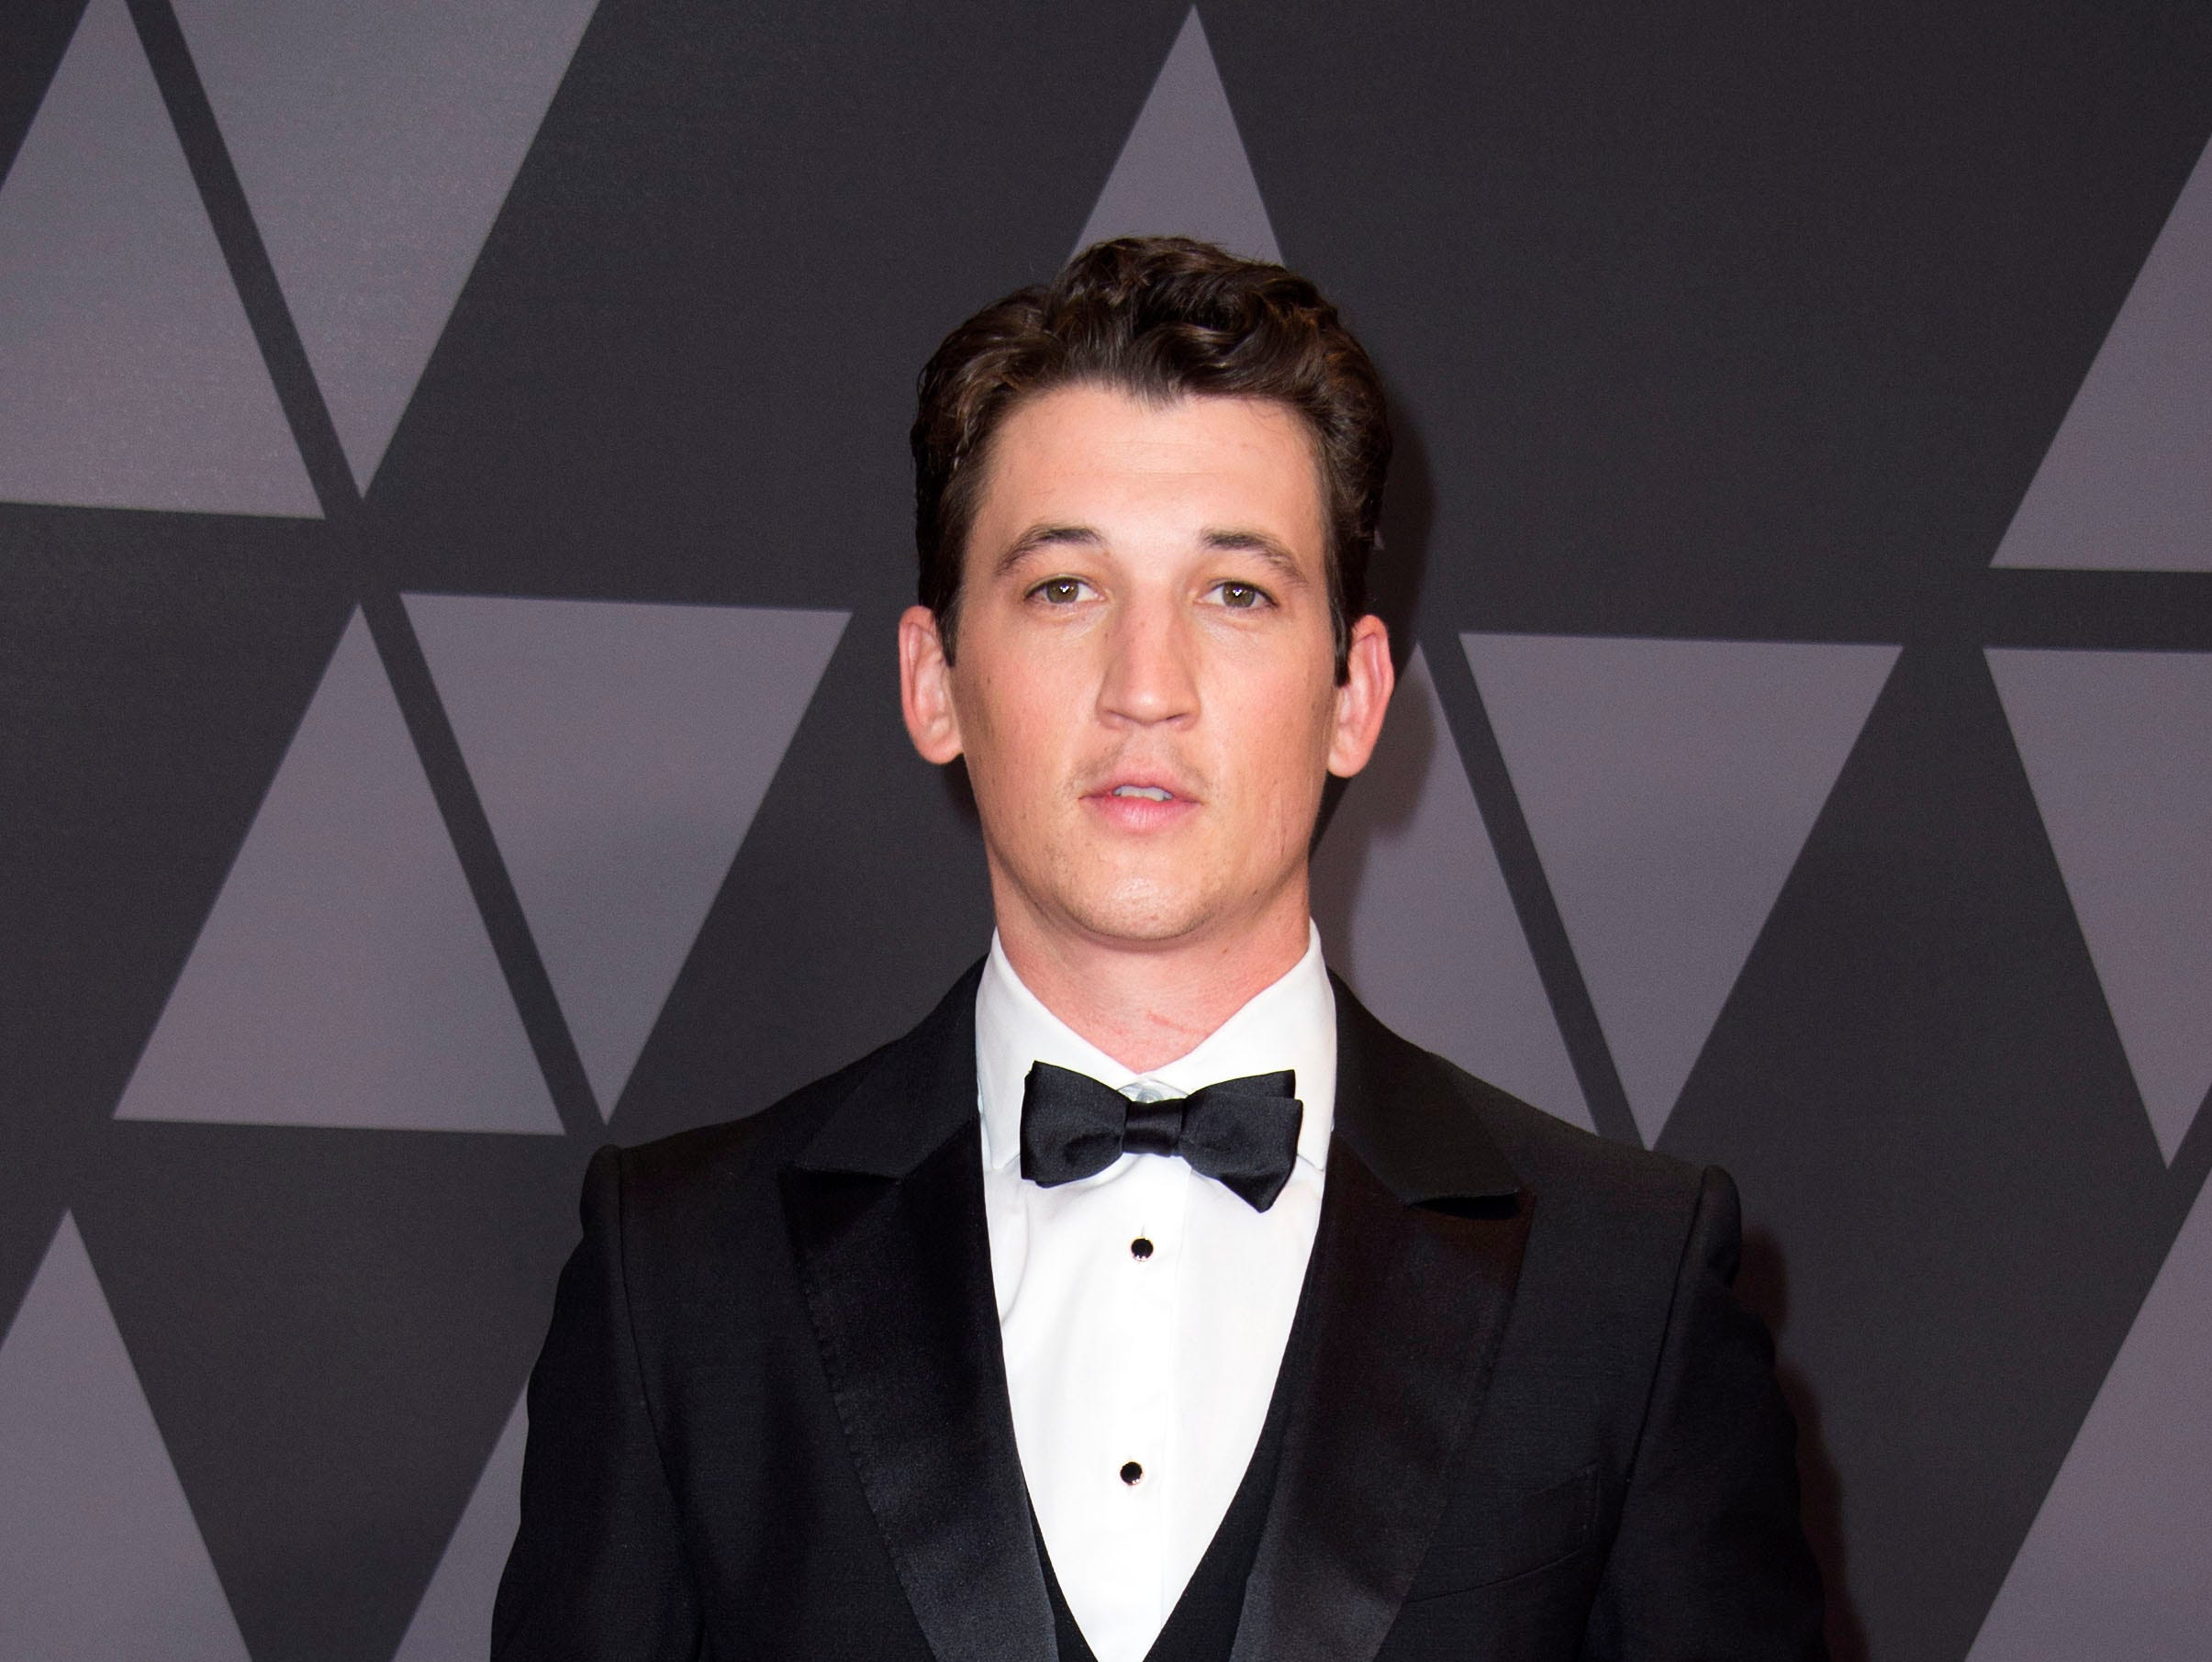 Actor Miles Teller attends the 2017 Governors Awards, on November 11, 2017, in Hollywood, California. / AFP PHOTO / VALERIE MACONVALERIE MACON/AFP/Getty Images ORG XMIT: 1 ORIG FILE ID: AFP_U73EL